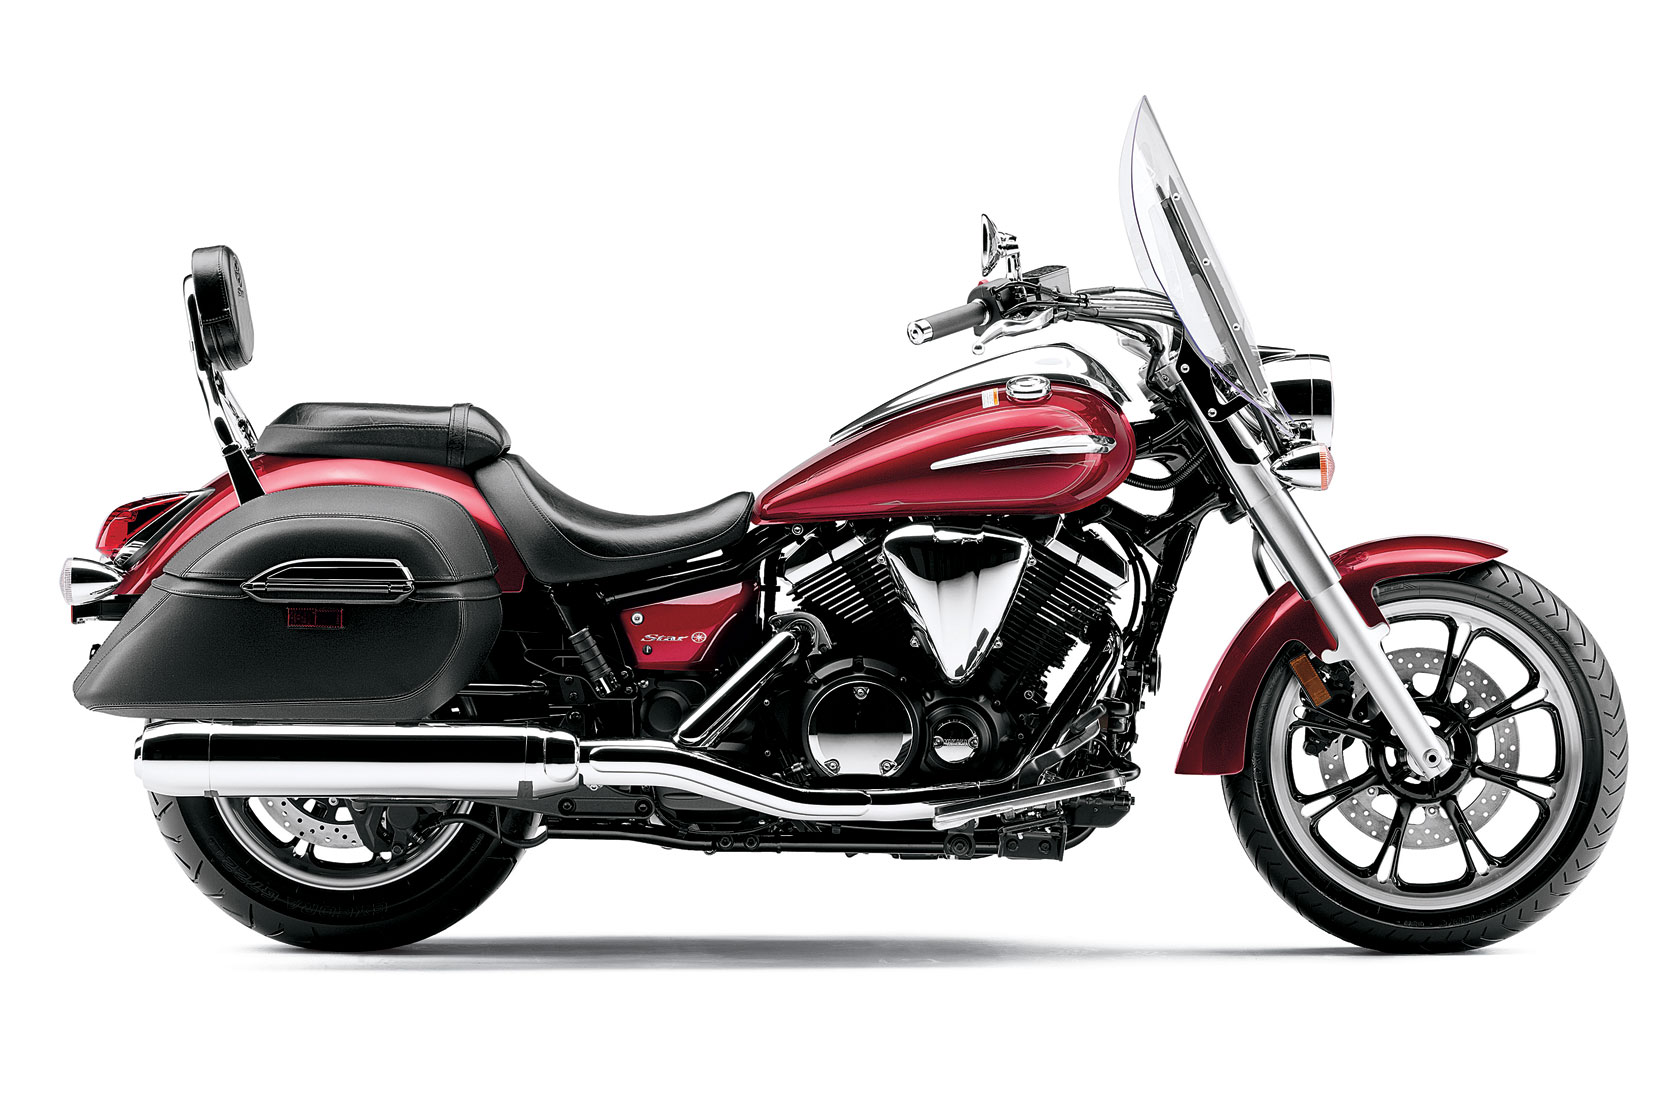 Yamaha V Star 1300 Tourer 2011 #6